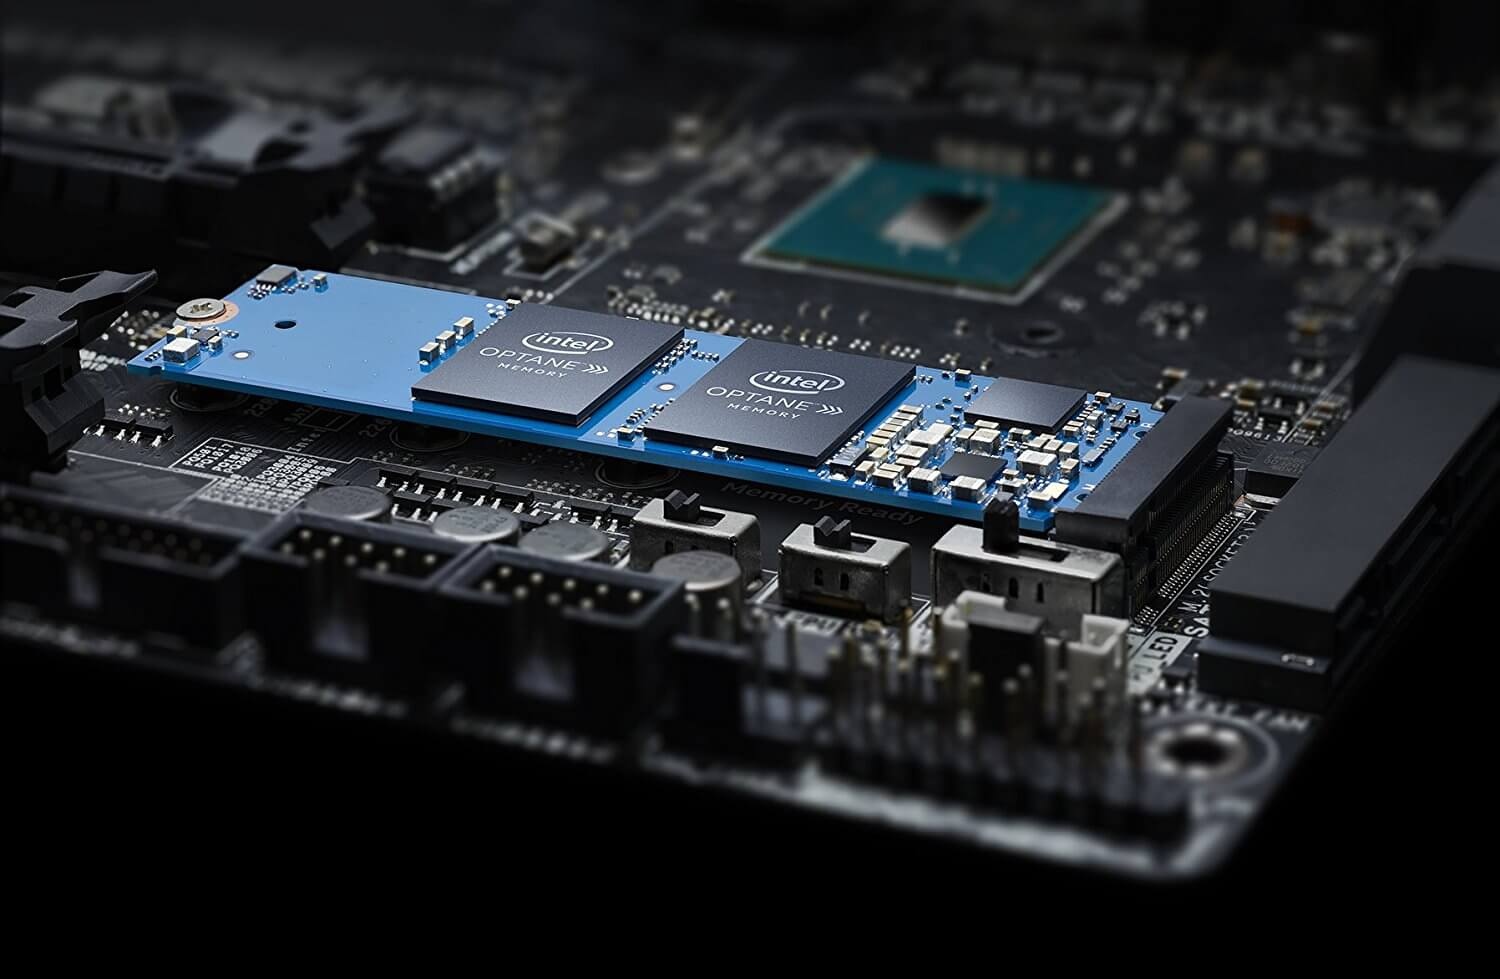 Micron is buying Intel's share of their 3D XPoint joint venture